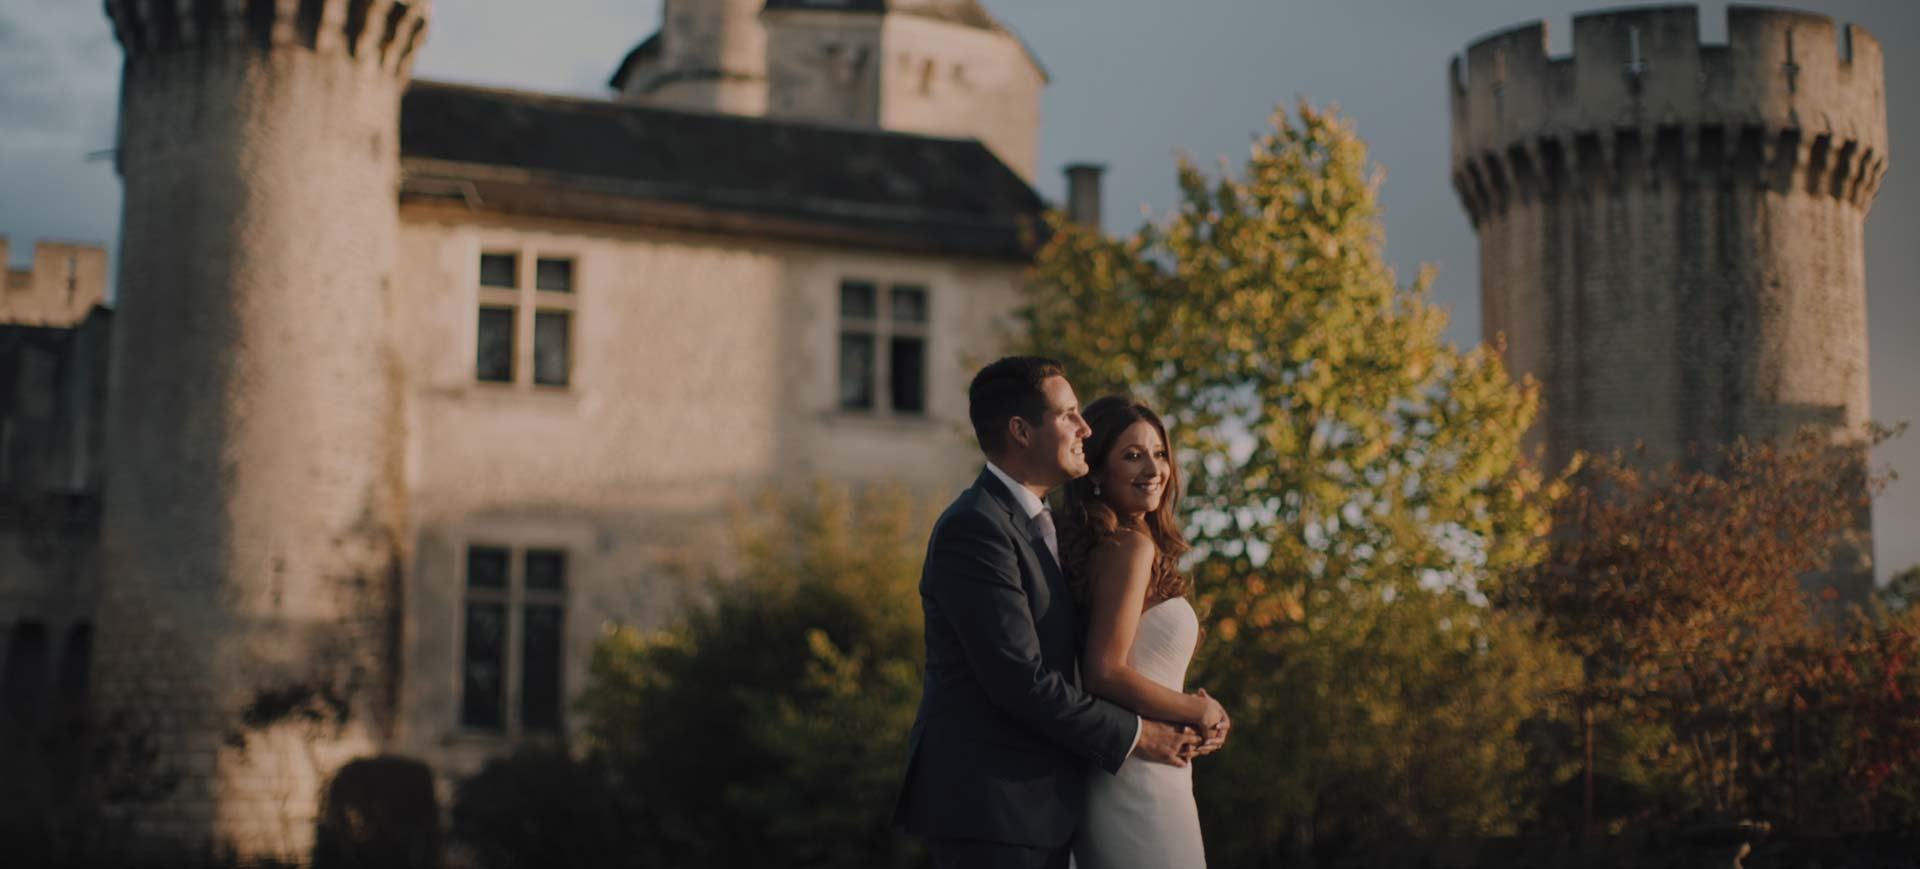 Dordogne Wedding video at Chateau Marouatte, France